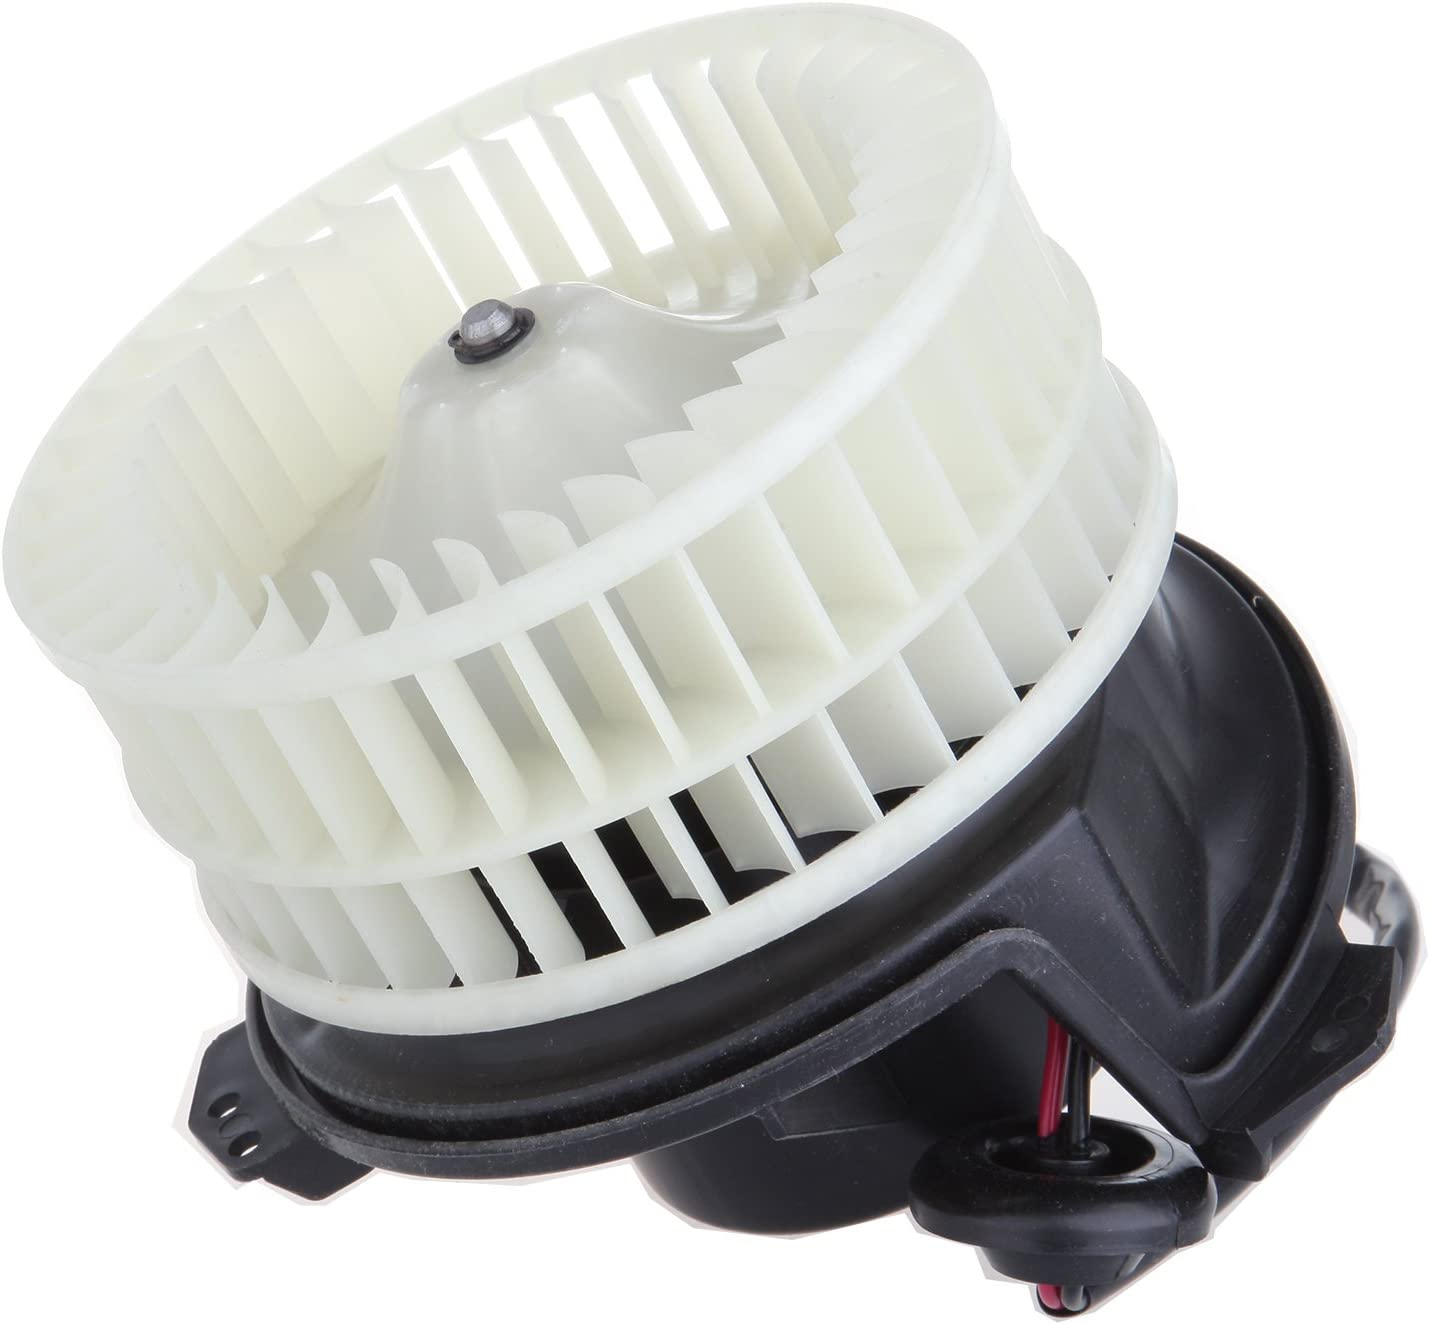 HVAC plastic Heater Blower Motor w//Fan Cage ECCPP Replacement fit for 2004-2008 Chrysler Pacifica 2001-2007 Chrysler Town /& Country 2001-2007 Dodge Caravan 2001-2007 Dodge Grand Caravan 058376-5211-0925482